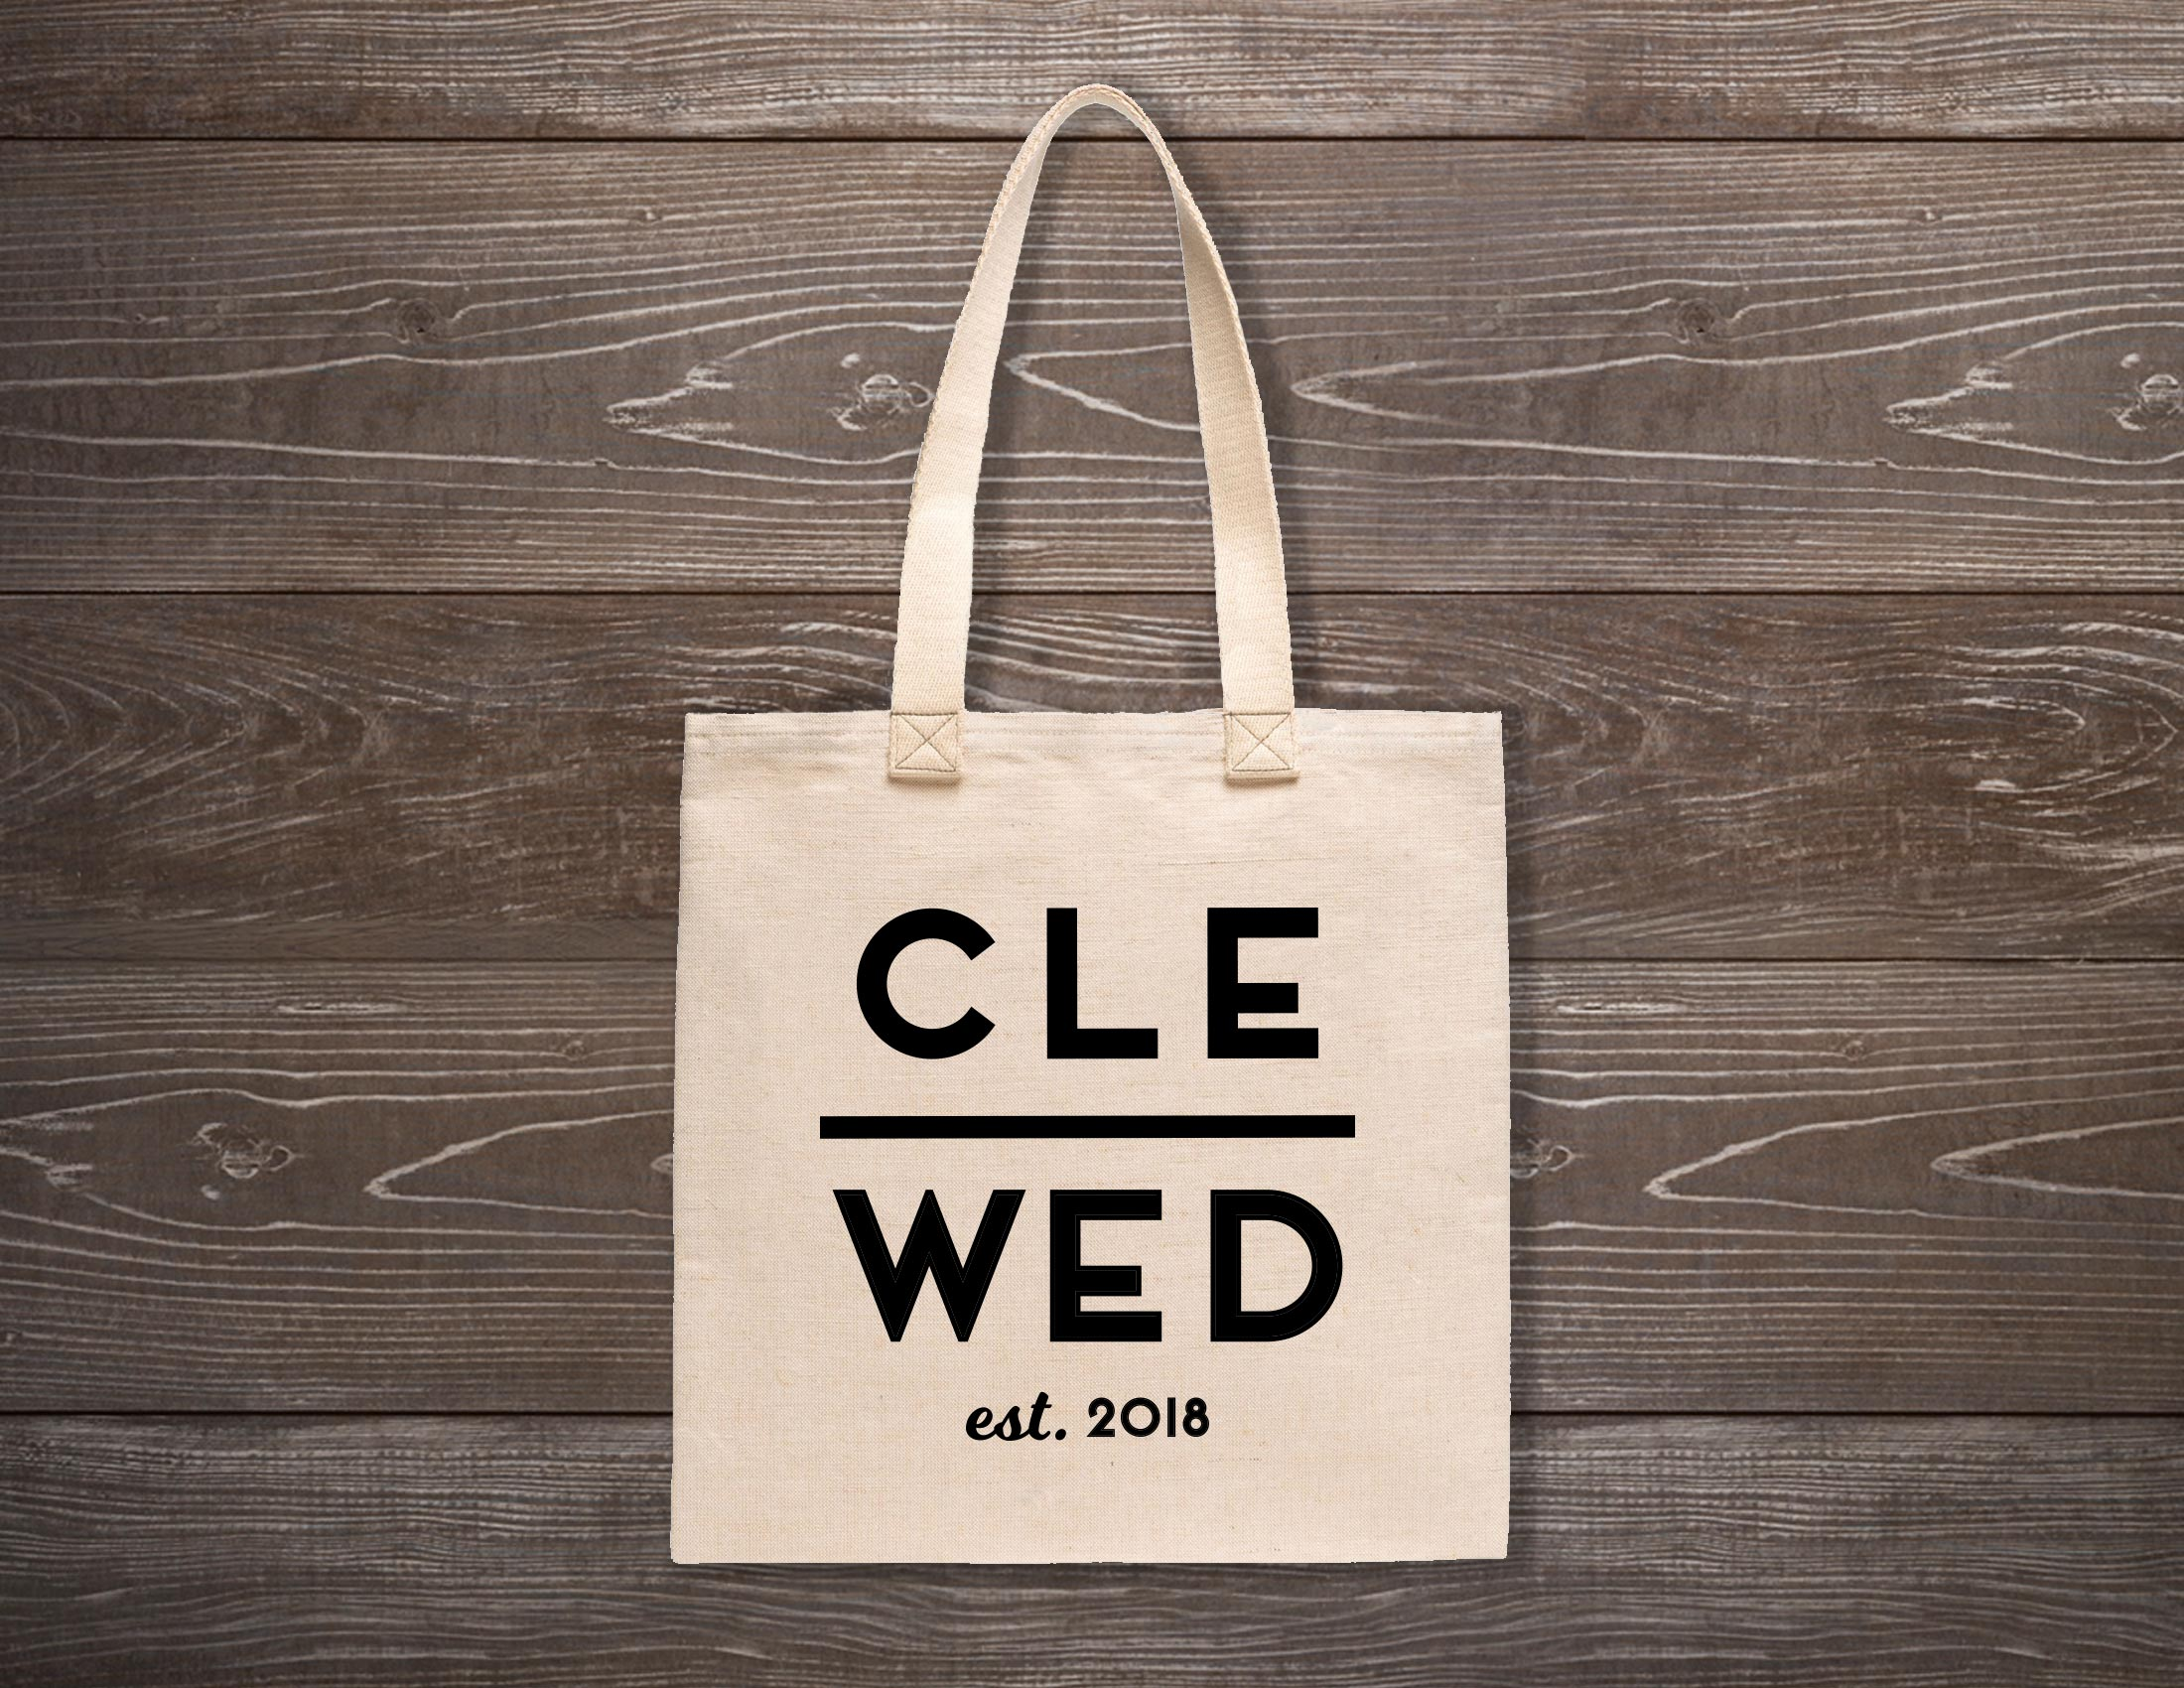 Cle Wed Custom Tote Bag